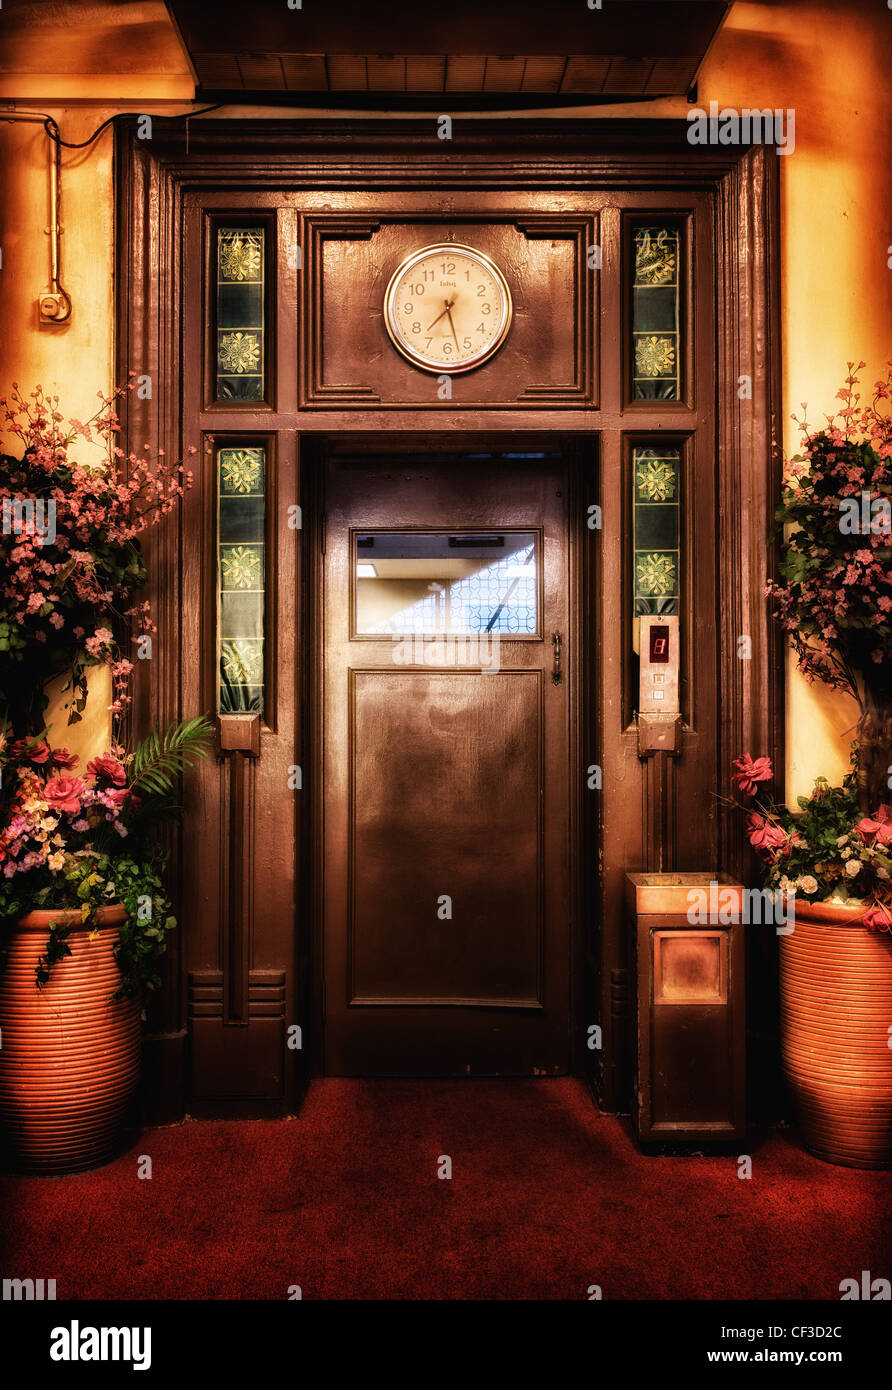 old vintage elevator door in the lobby - Stock Image